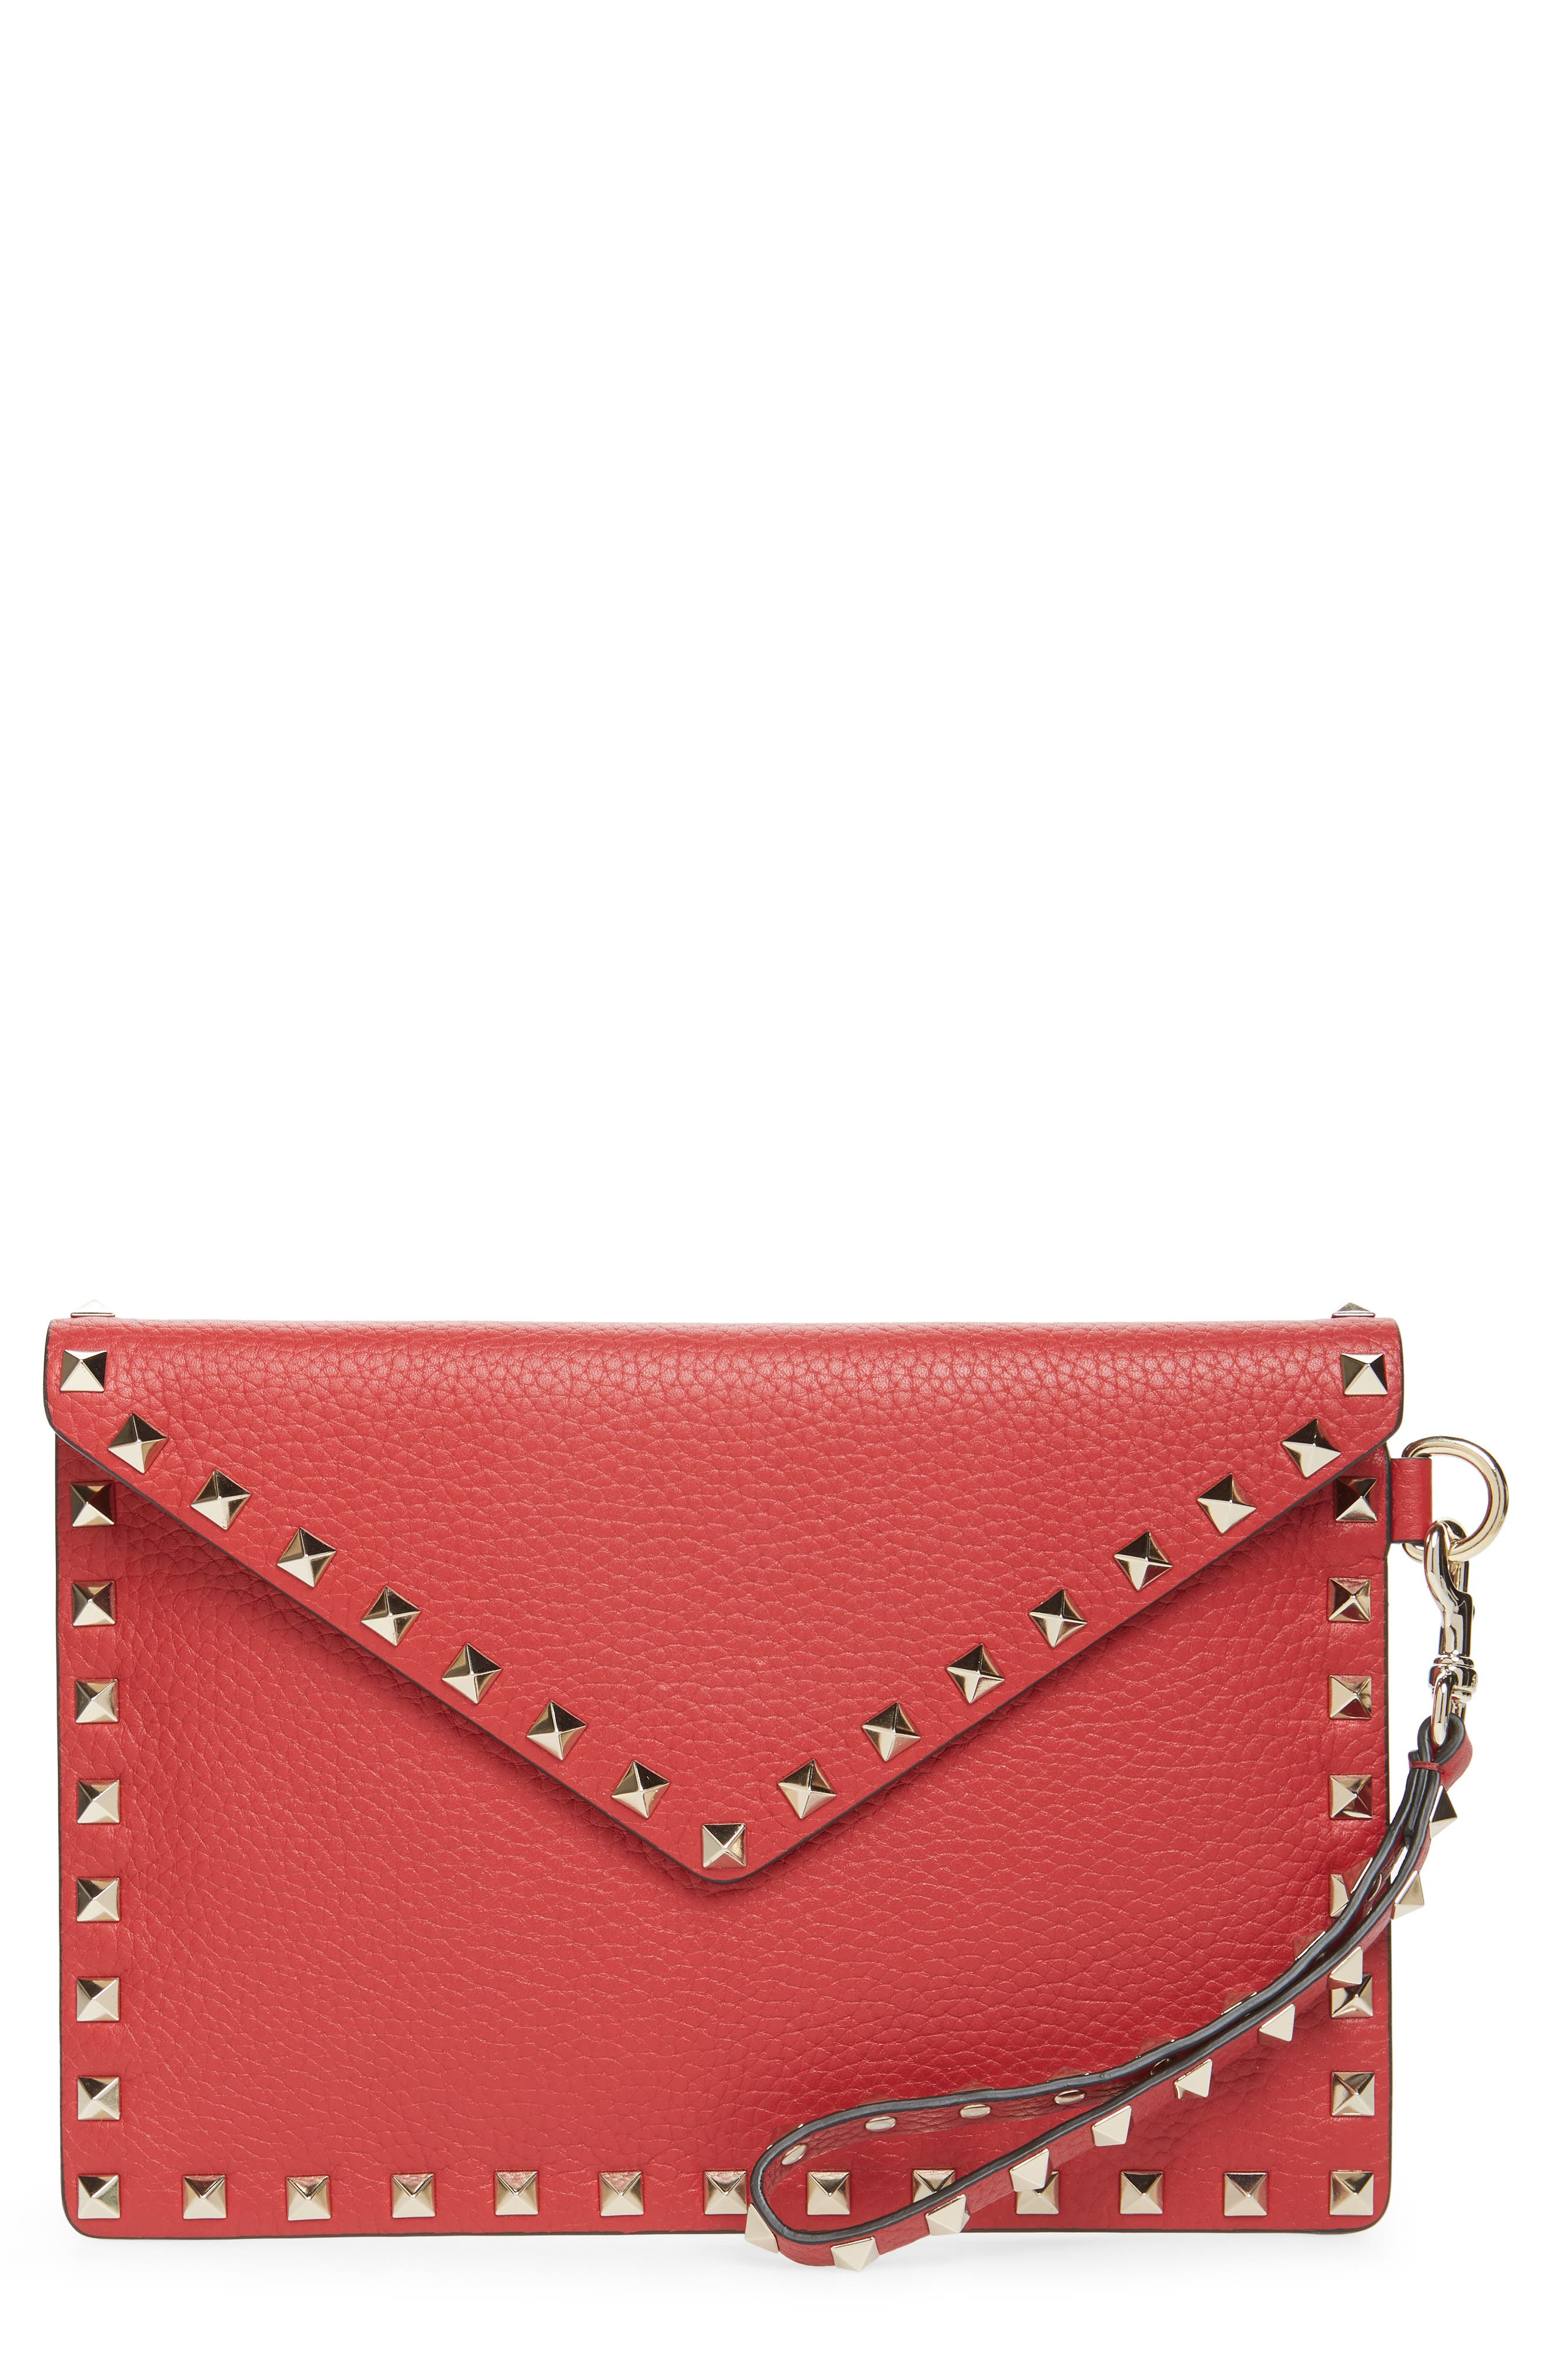 Medium Rockstud Leather Envelope Pouch,                             Main thumbnail 1, color,                             ROSSO V